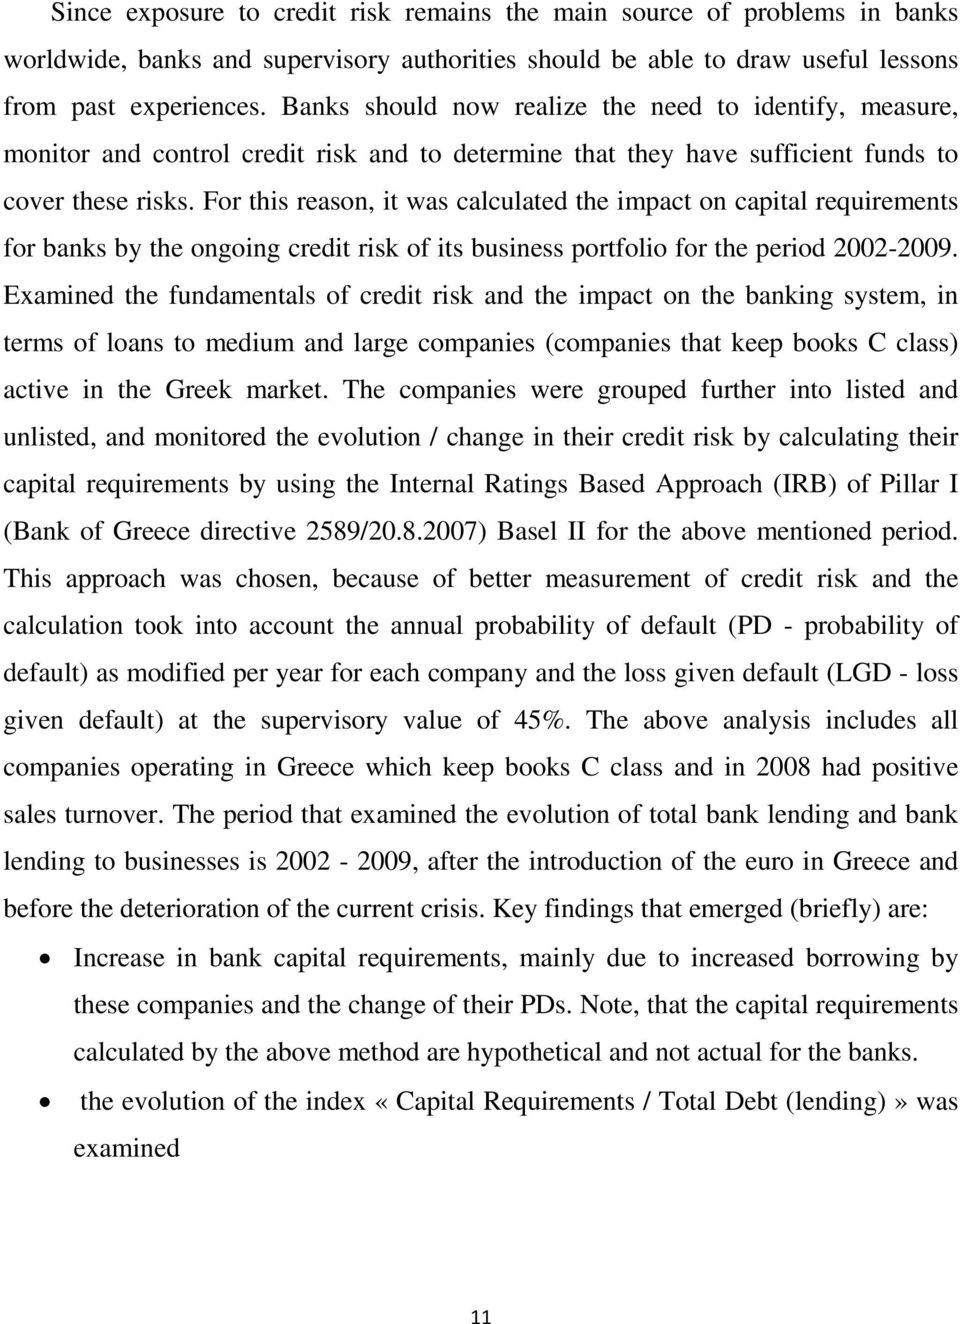 For this reason, it was calculated the impact on capital requirements for banks by the ongoing credit risk of its business portfolio for the period 2002-2009.